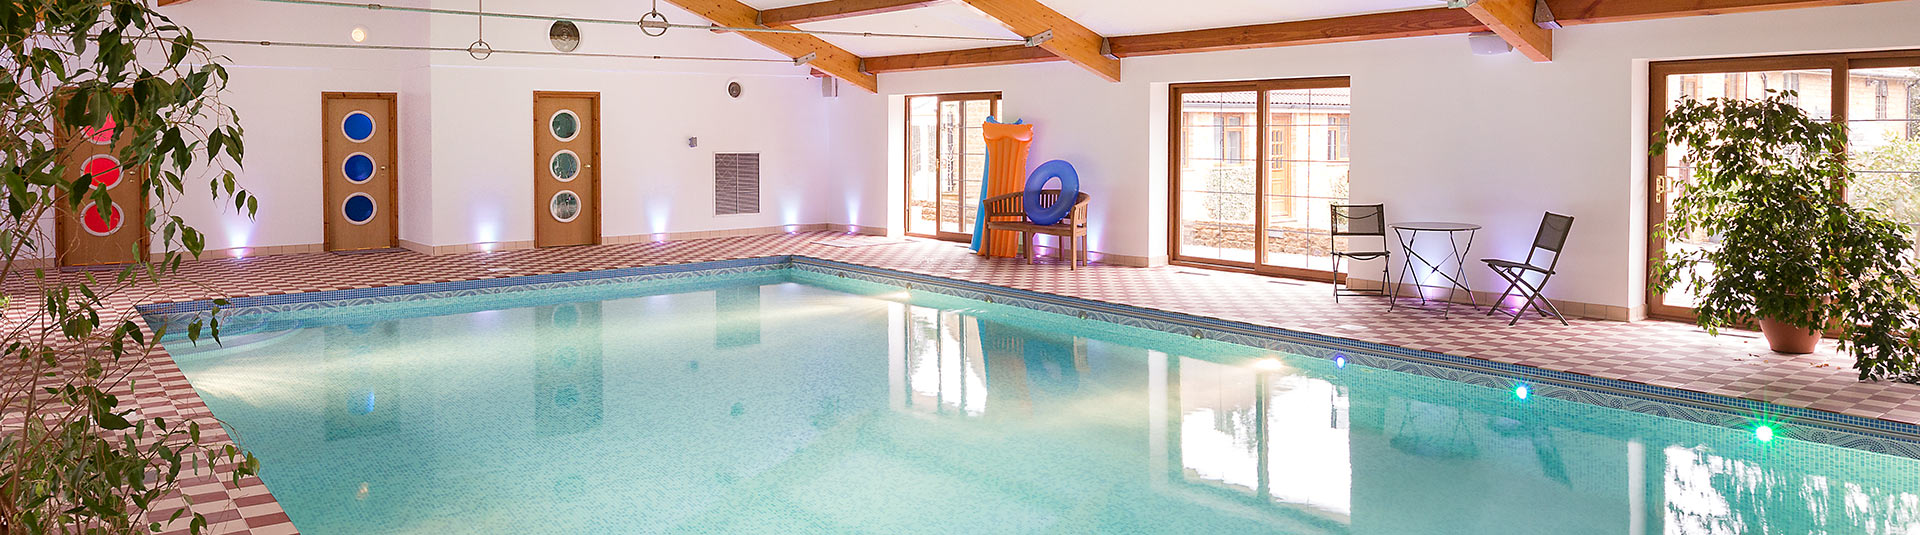 Holiday Cottages With Indoor Pools Classic Cottages